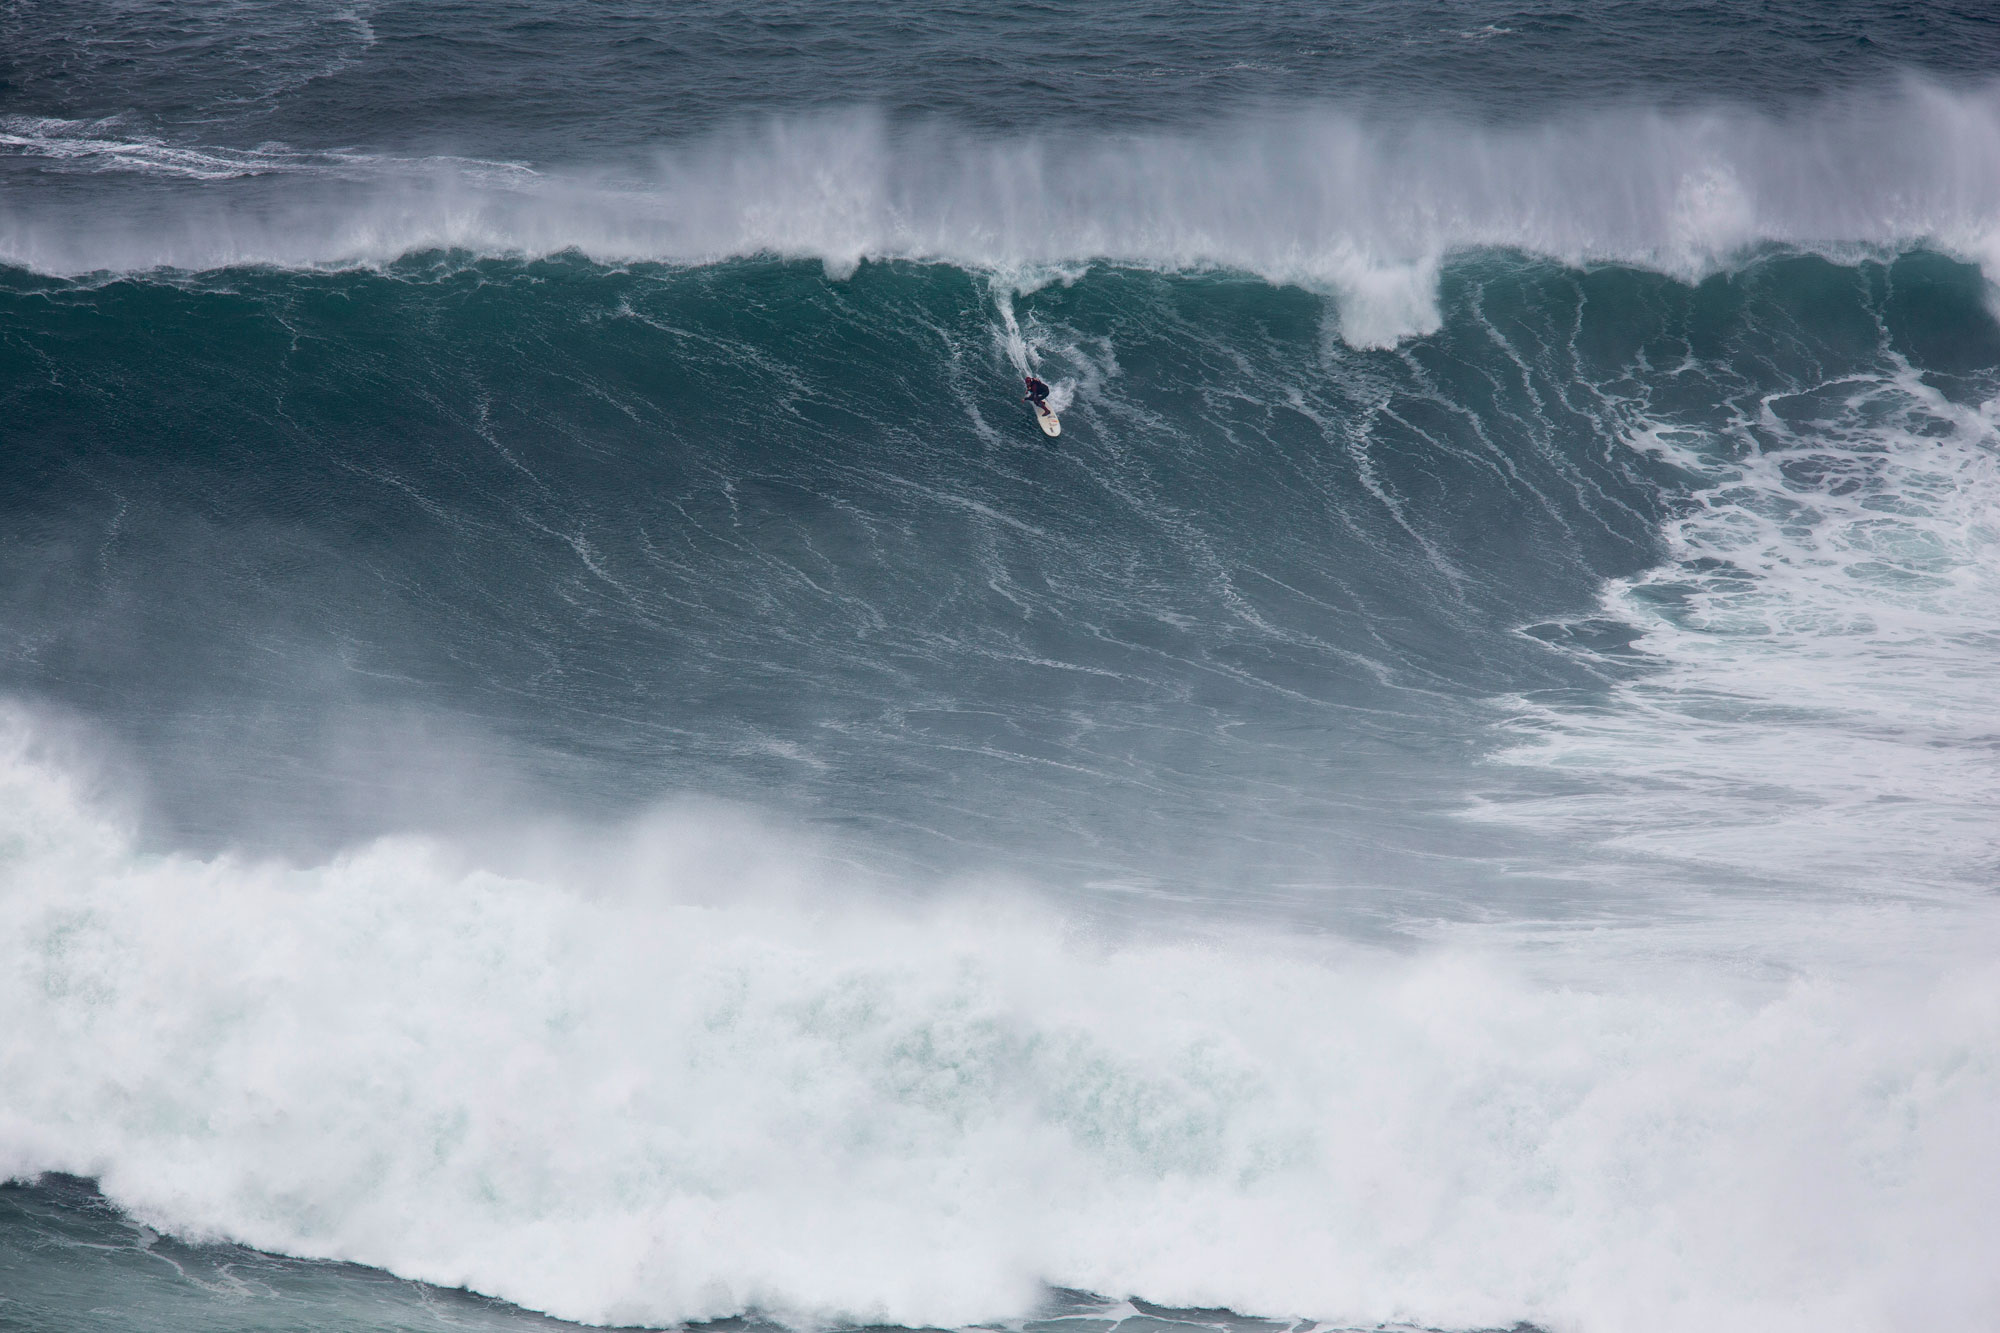 Big wave surfer Andrew Cotton in his element. Photography Vitor Estrelinha